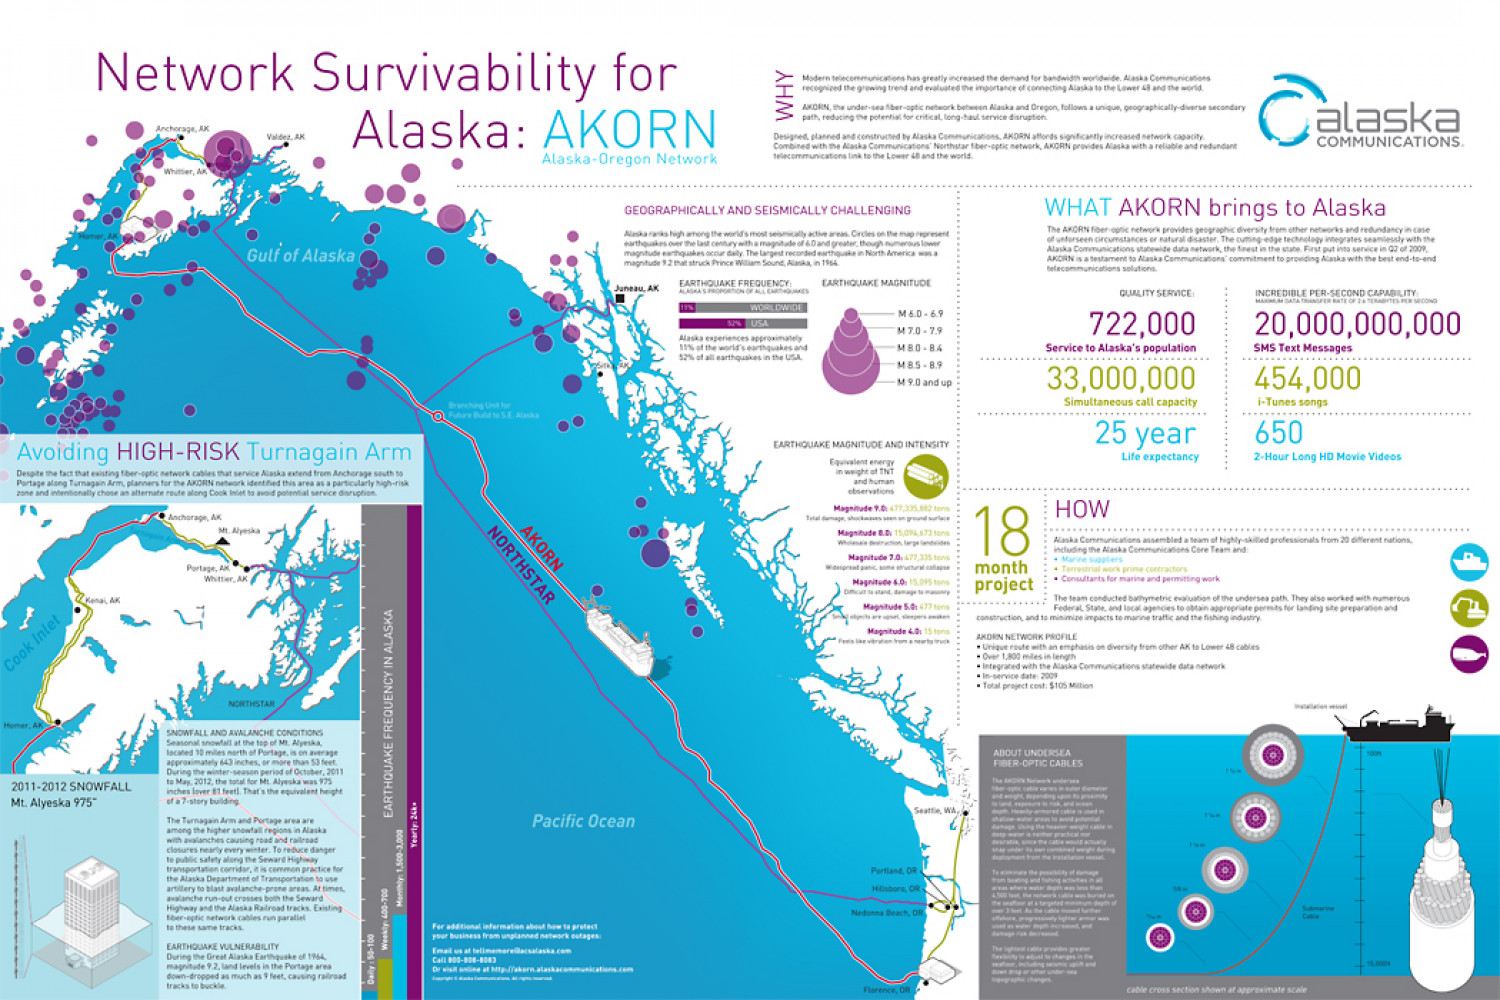 Network Survivability for Alaska Infographic